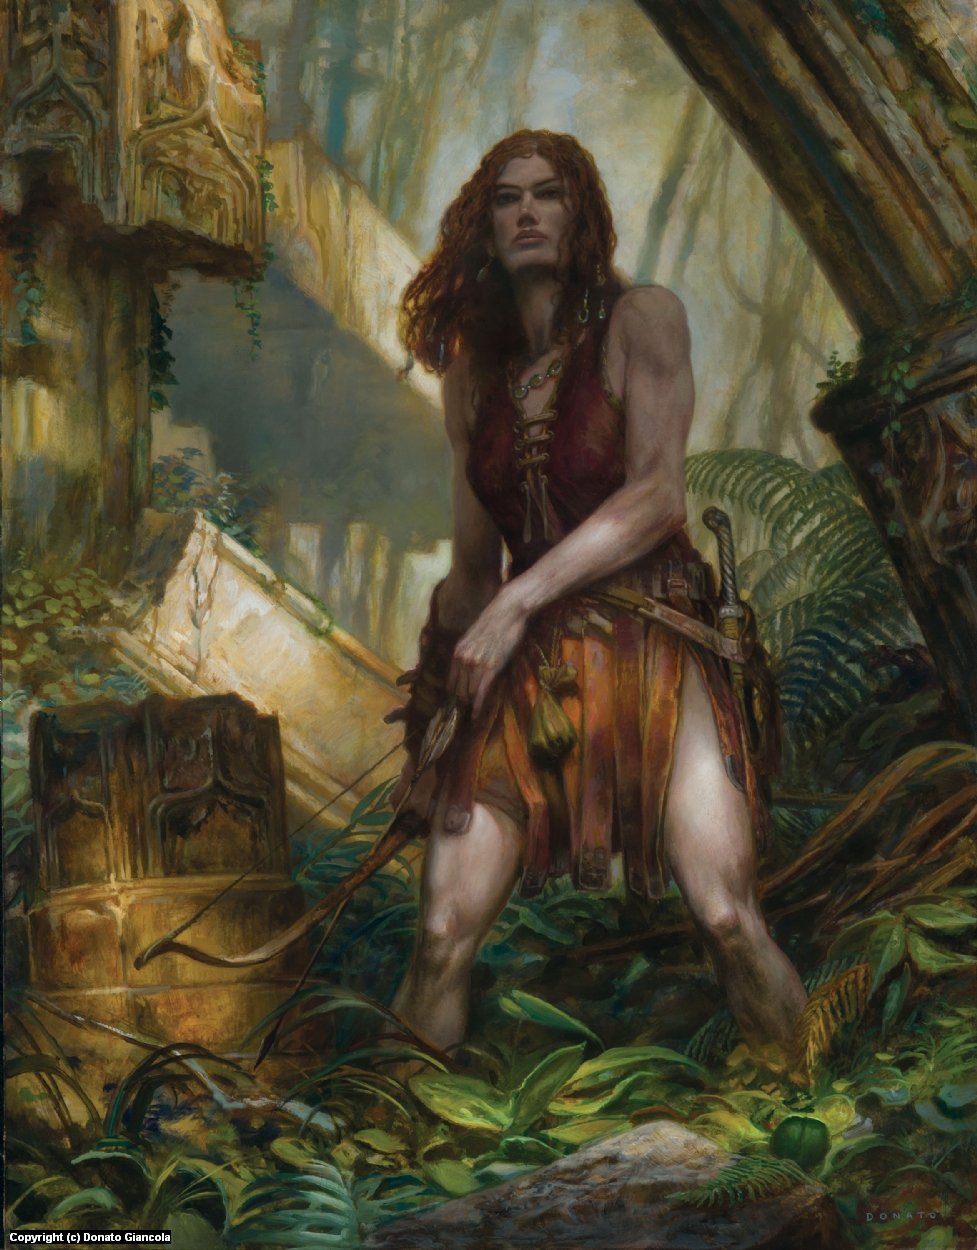 Red Sonya - Hunting Artwork by Donato Giancola